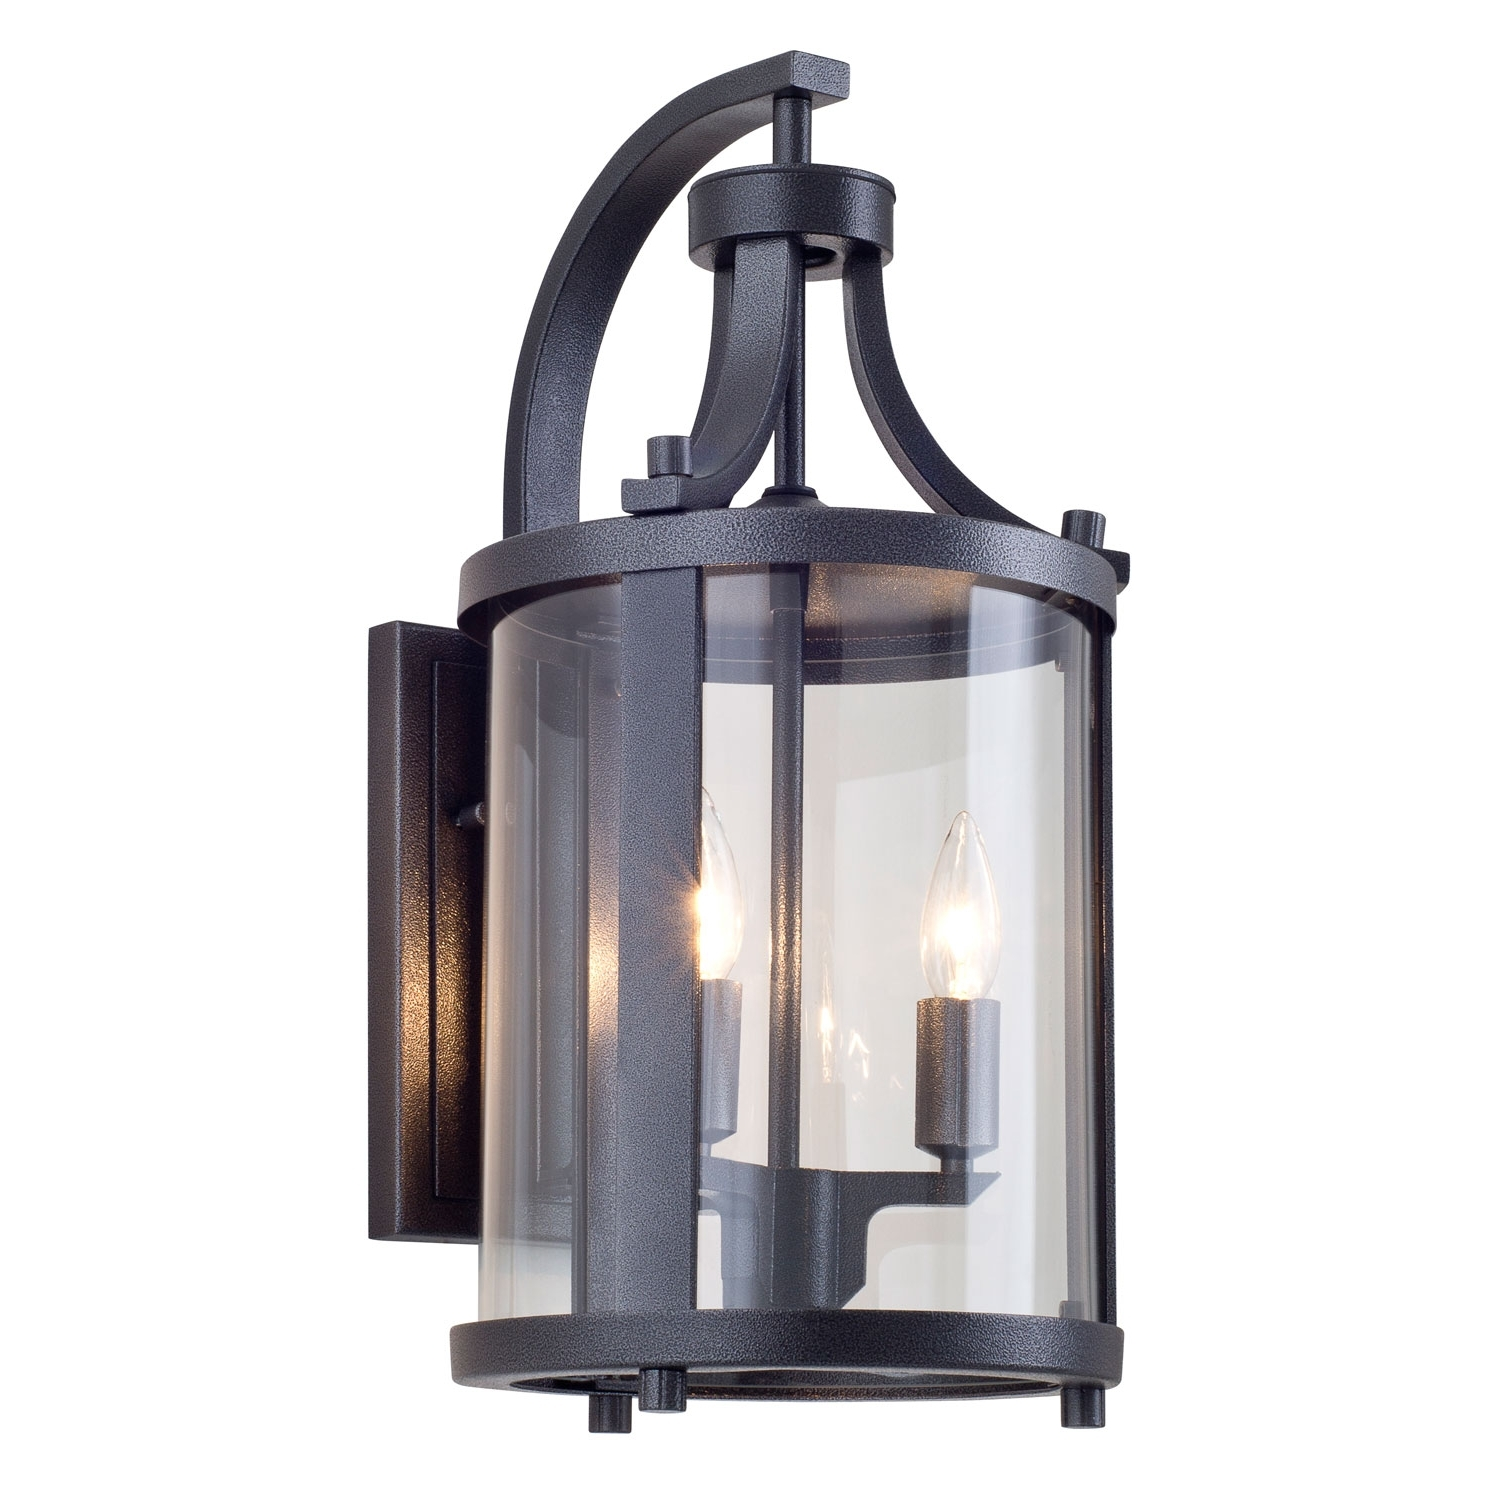 Outdoor Wall Lighting On Sale (View 10 of 20)